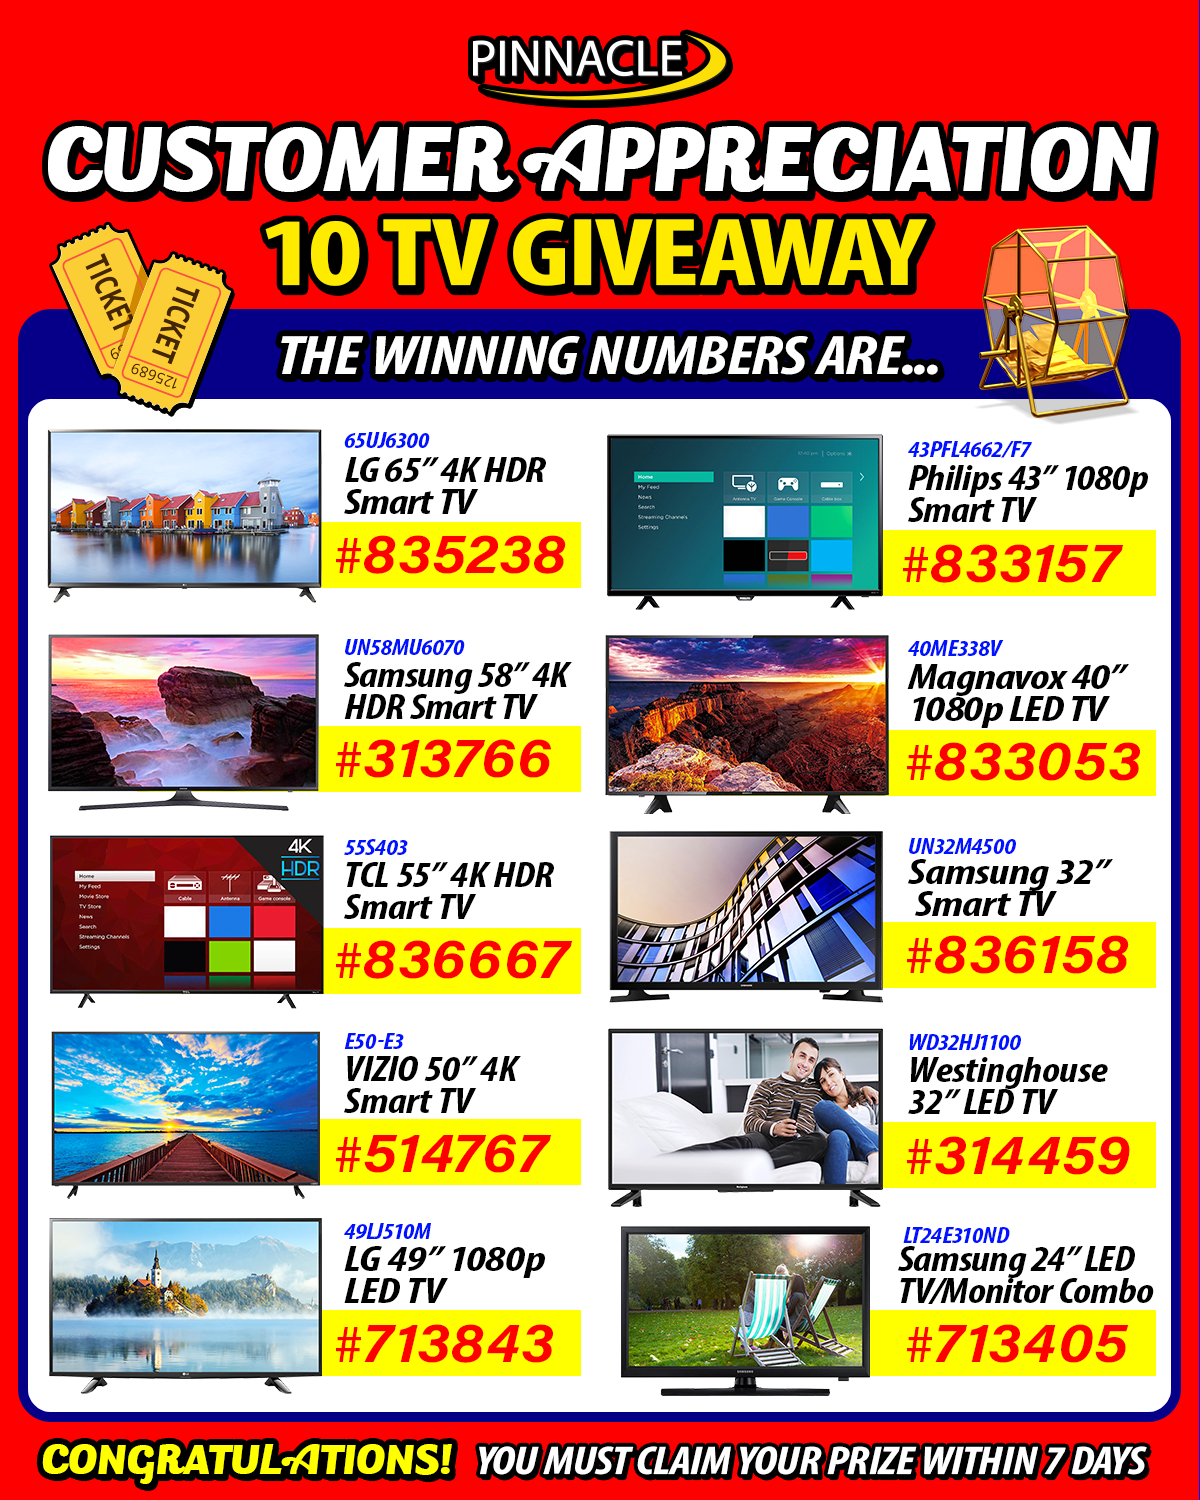 10-tv-giveaway-Numbers.png